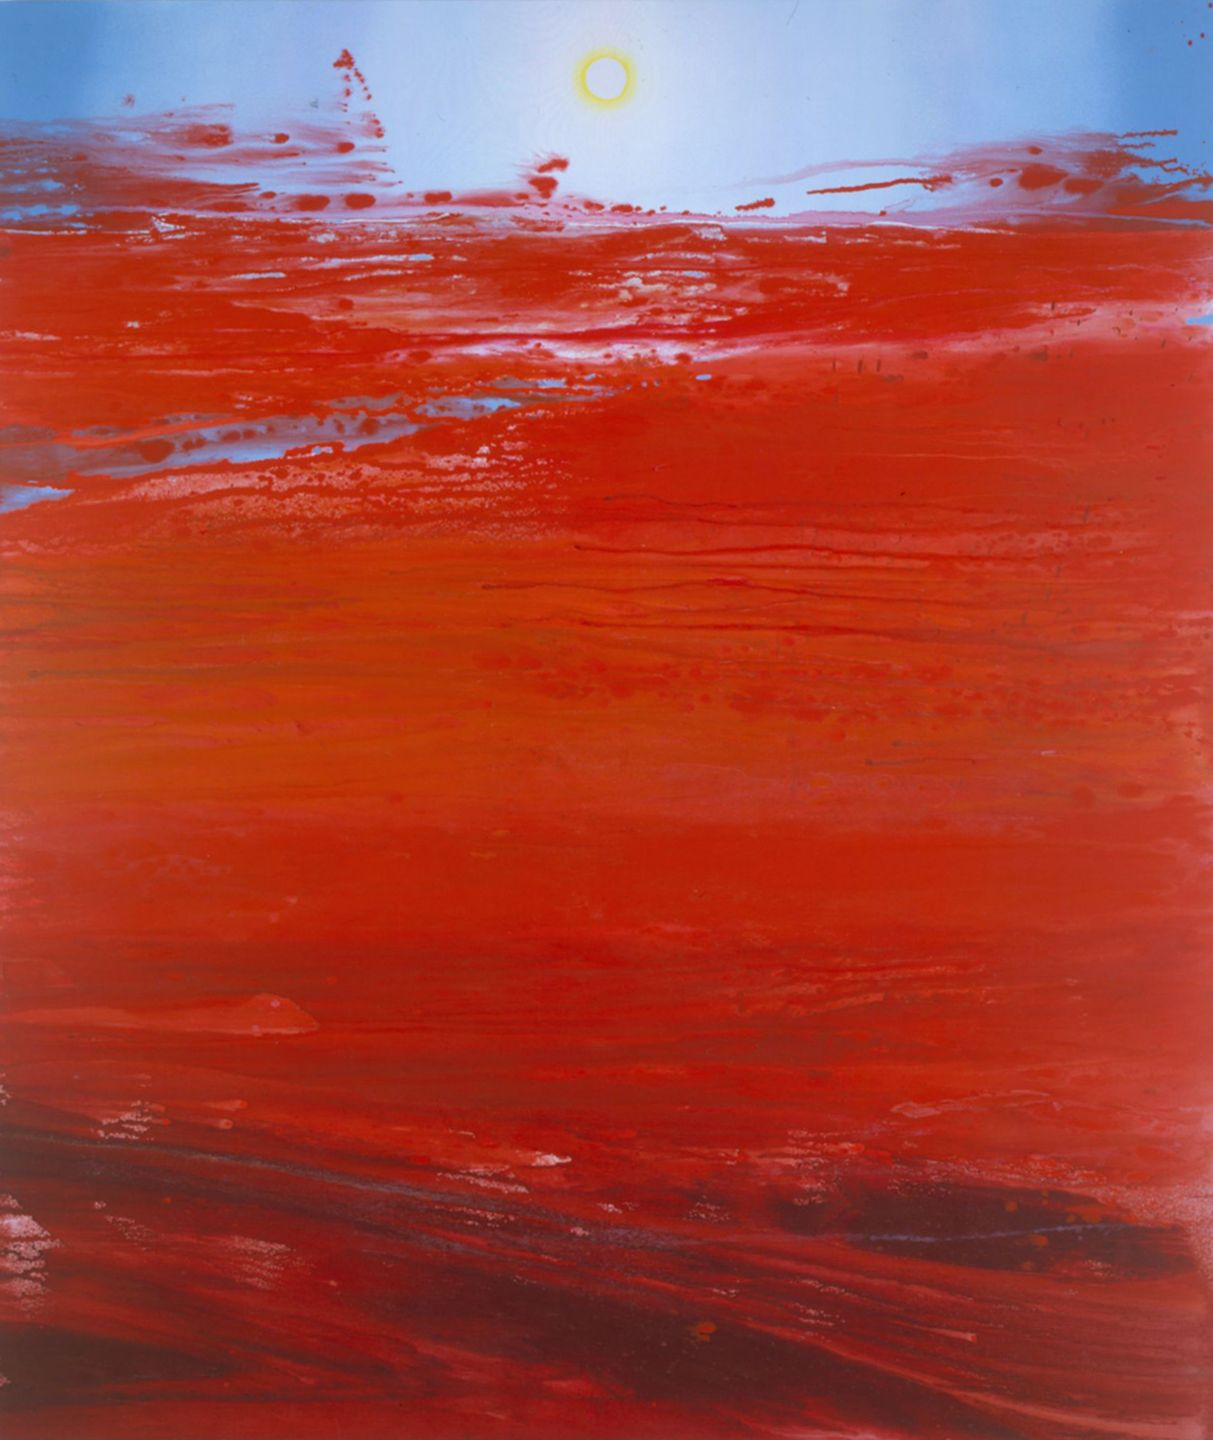 red flood painting with a visible sun by barnaby furnas